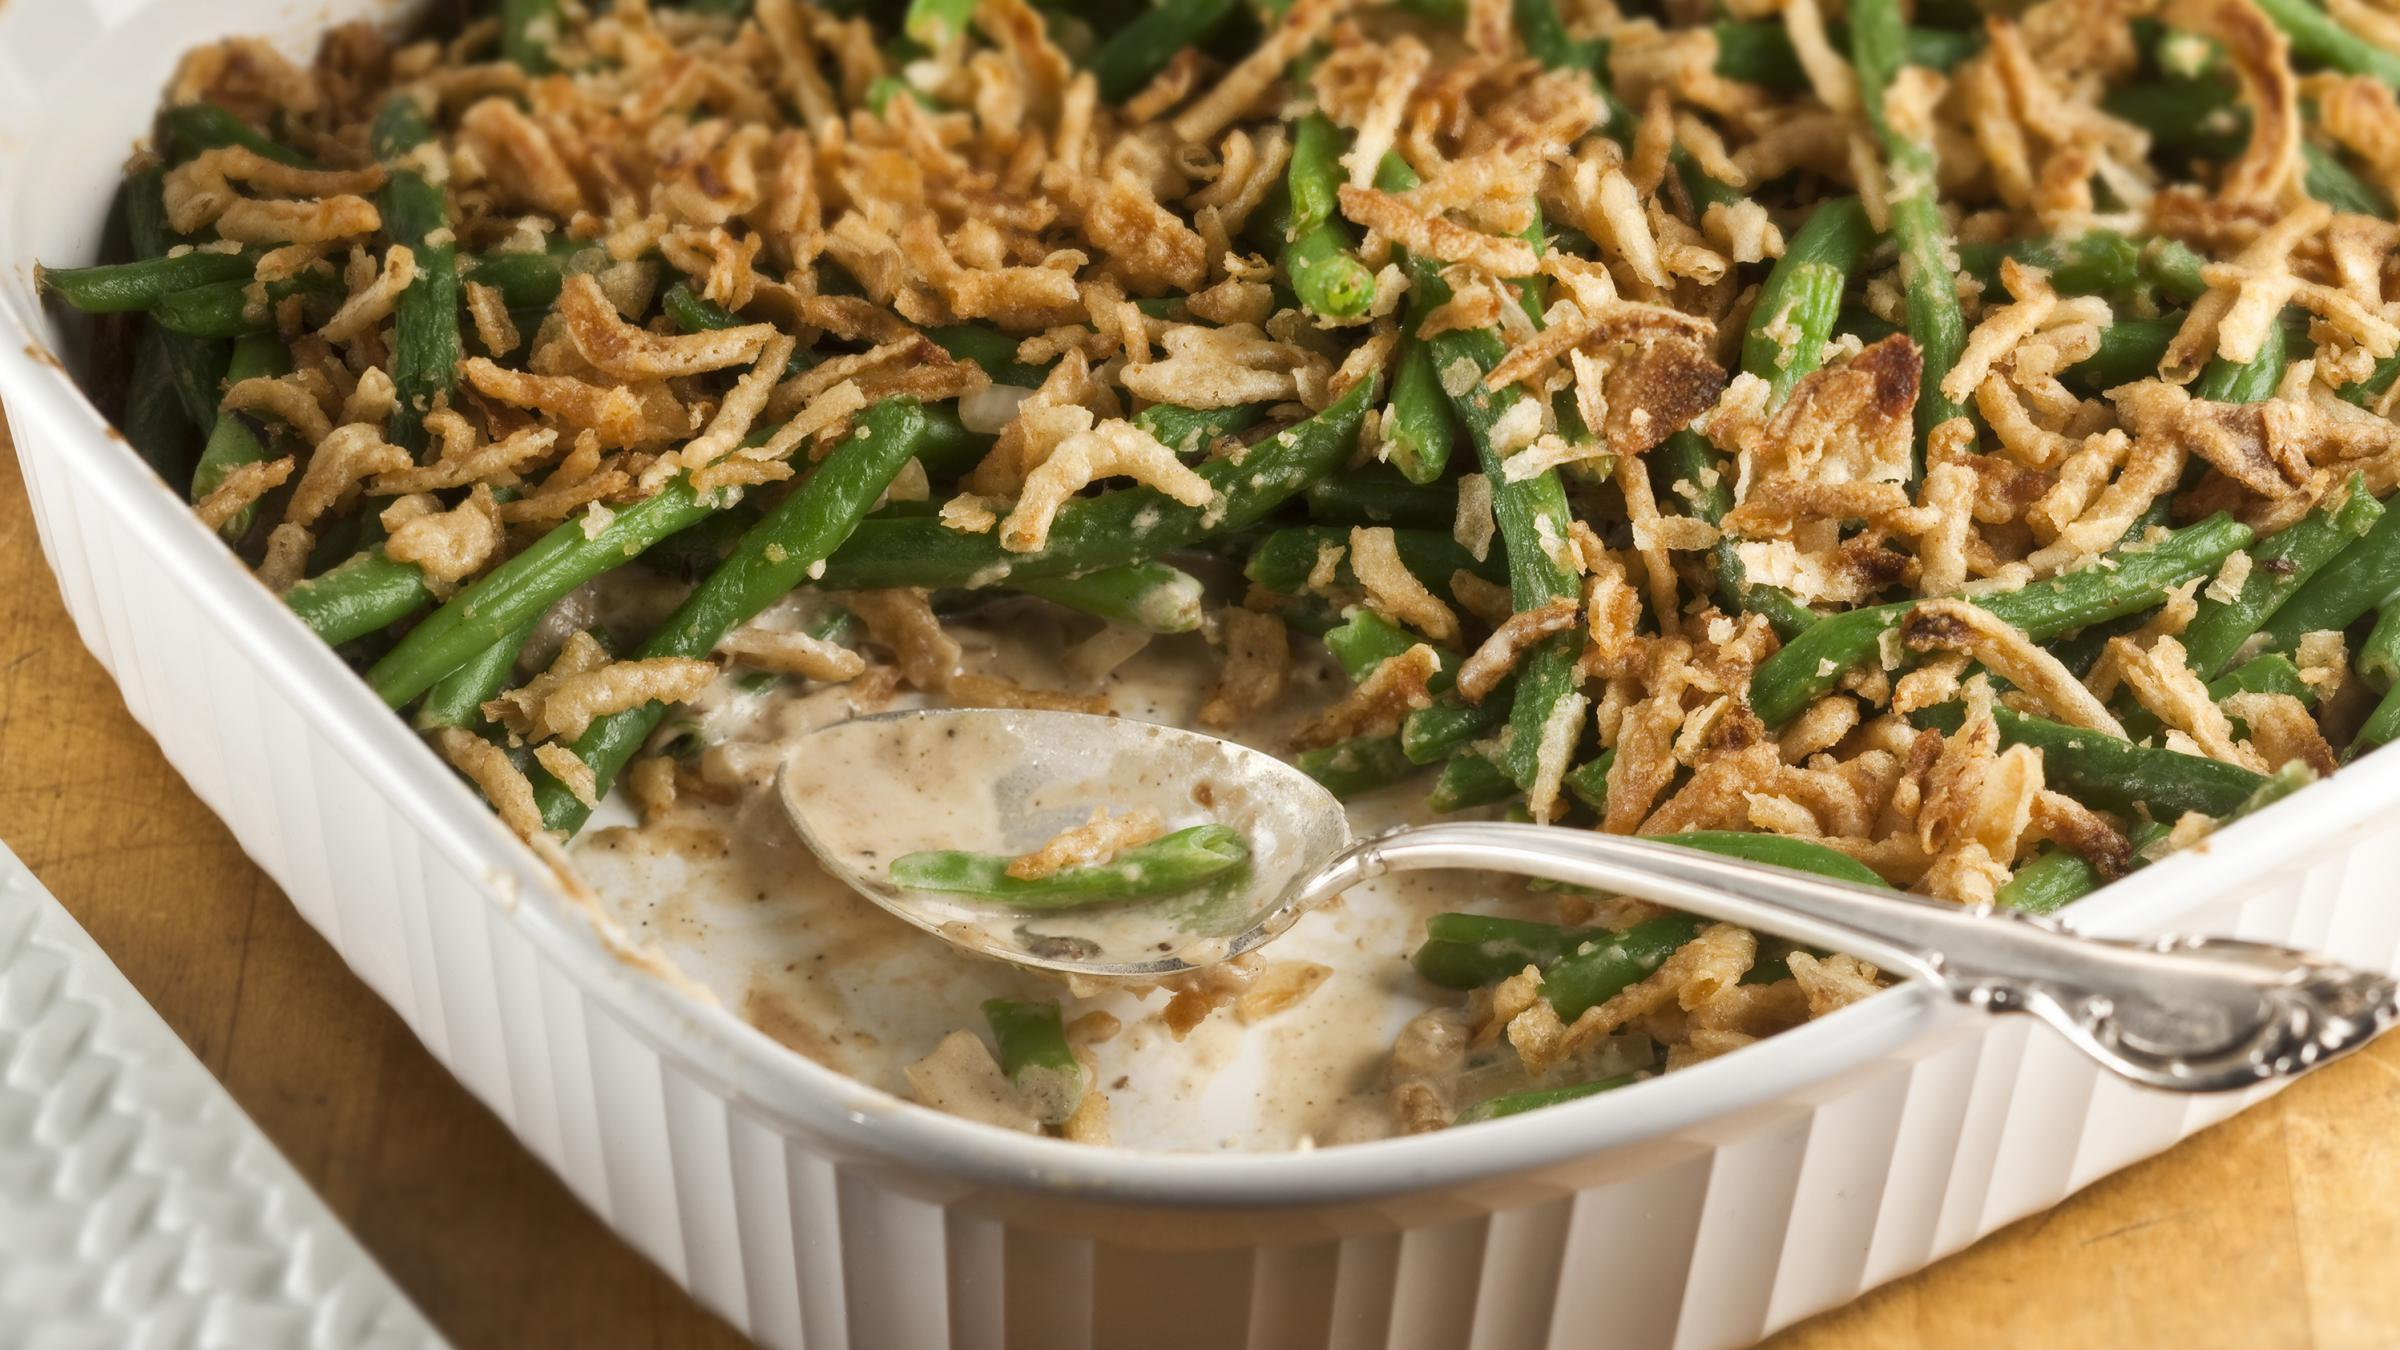 Green Bean Casserole The Thanksgiving Staple We Love Or Loathe